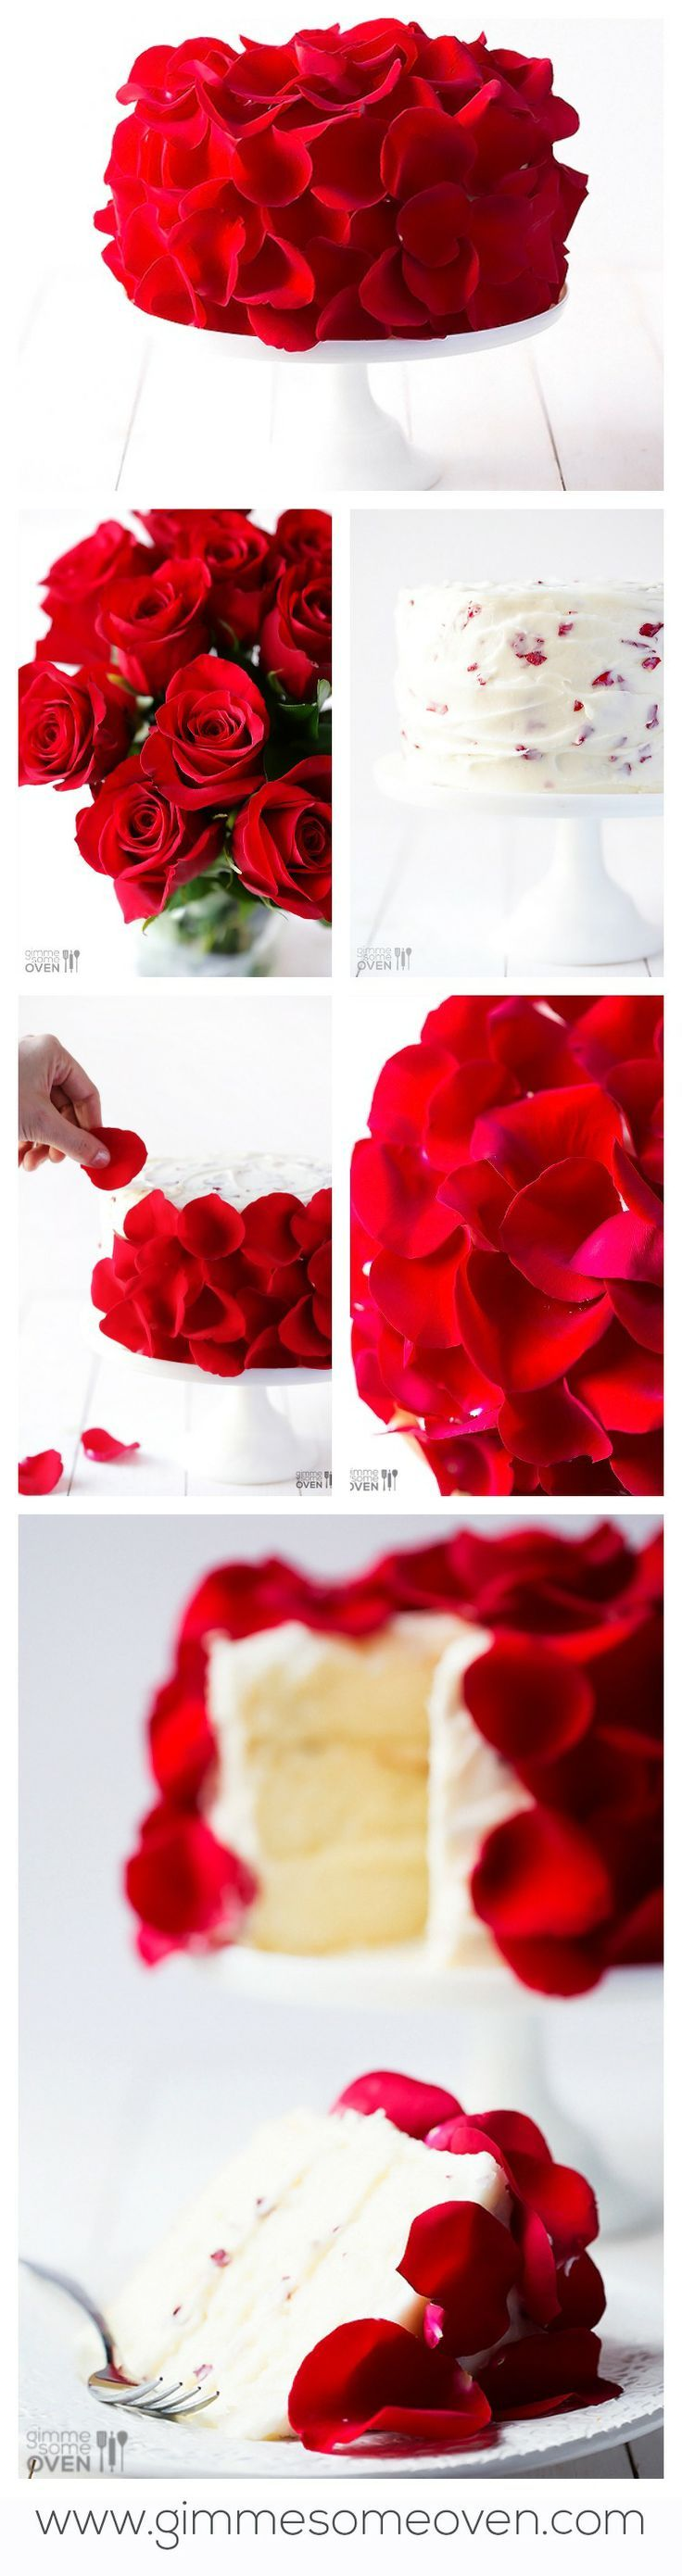 Best 25+ Rose Cake Tutorial Ideas On Pinterest  Rosette Cake Tutorial, Rose  Cake And Rose Swirl Cake